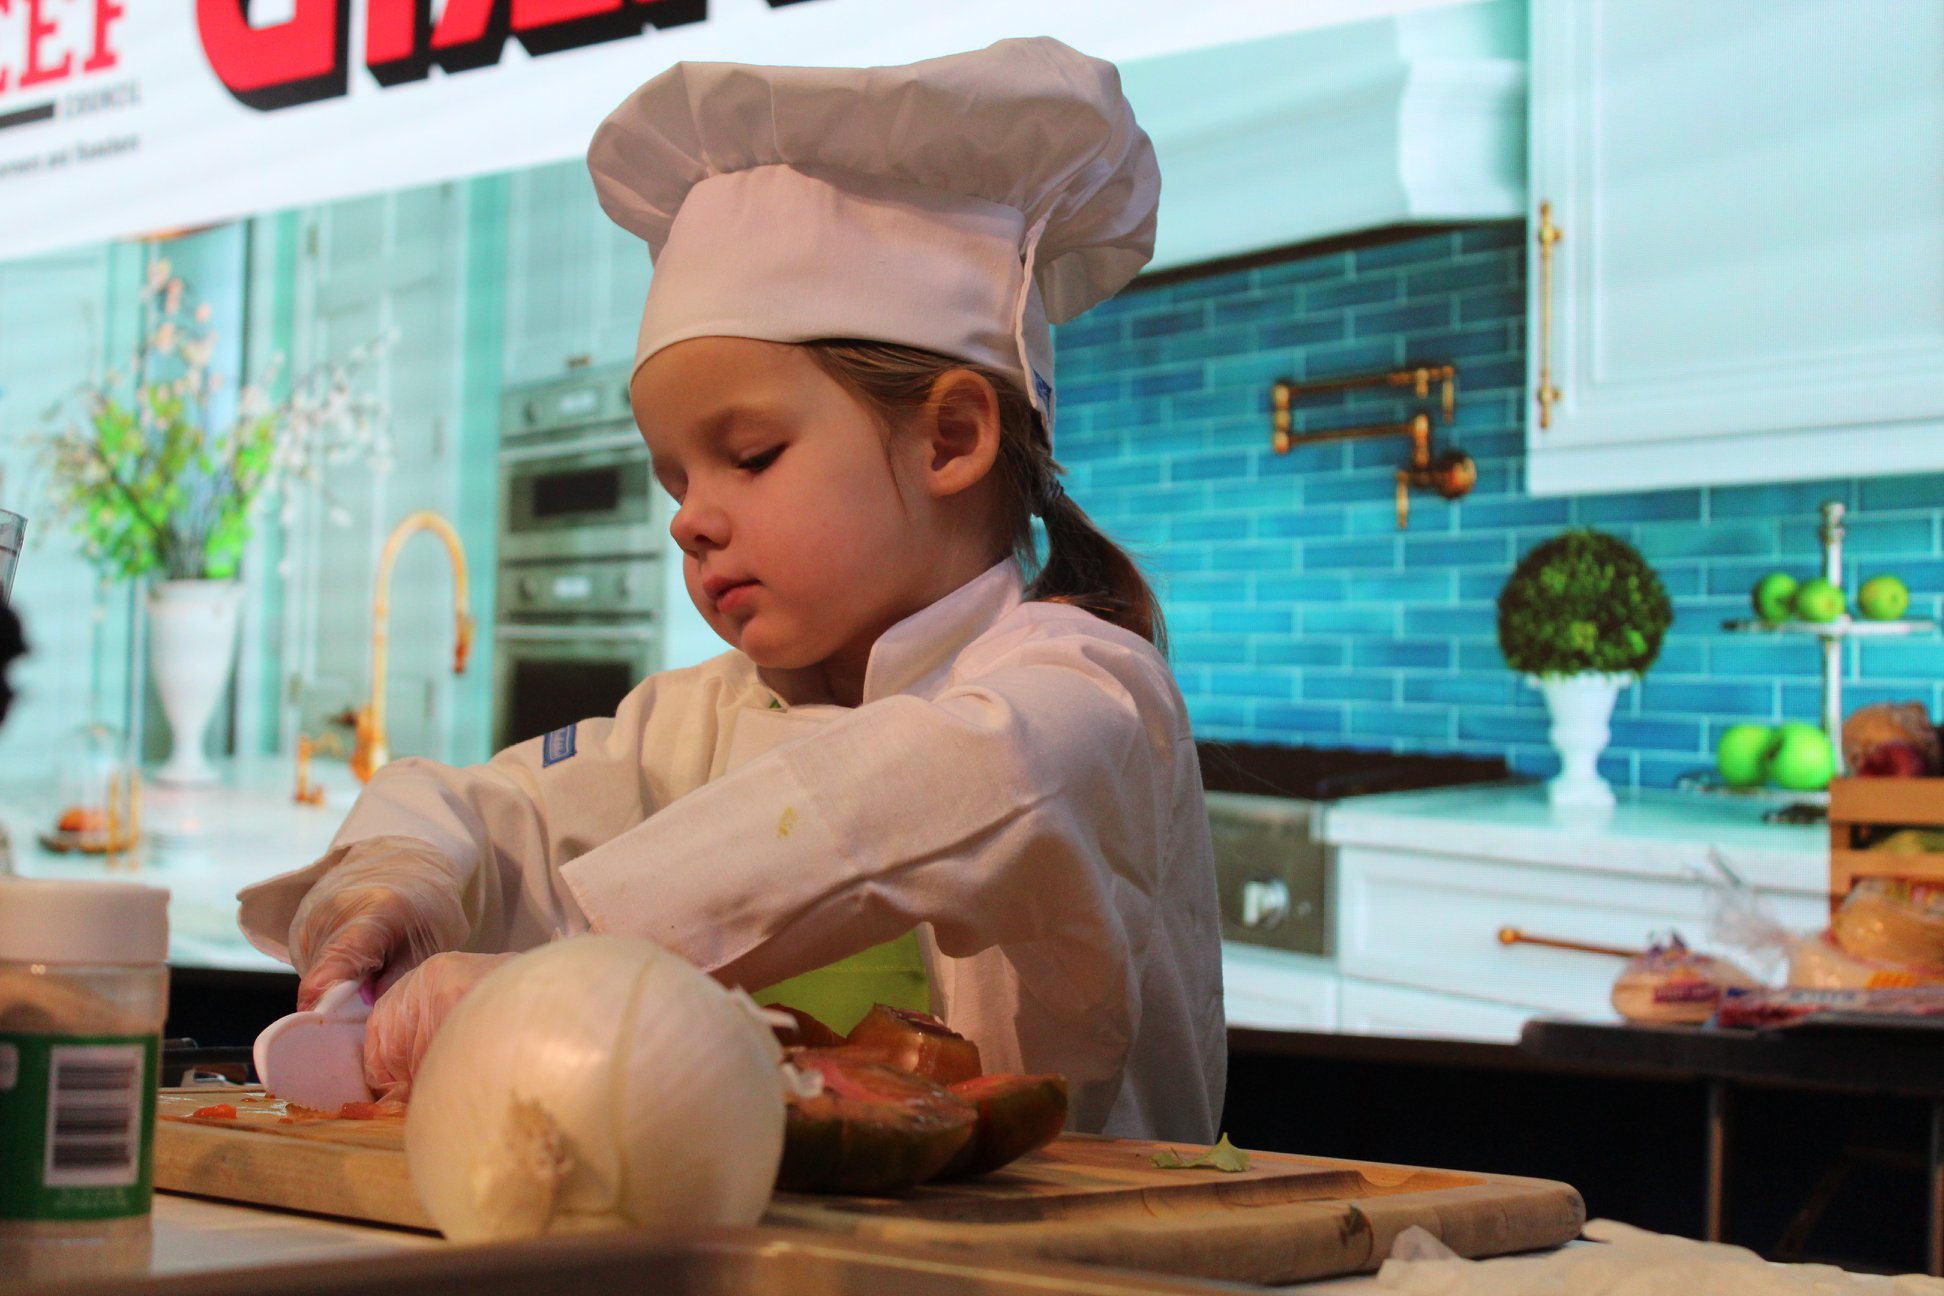 A young girl dressed as a chef and cooking at the 2020 Pennsylvania Farm Show.